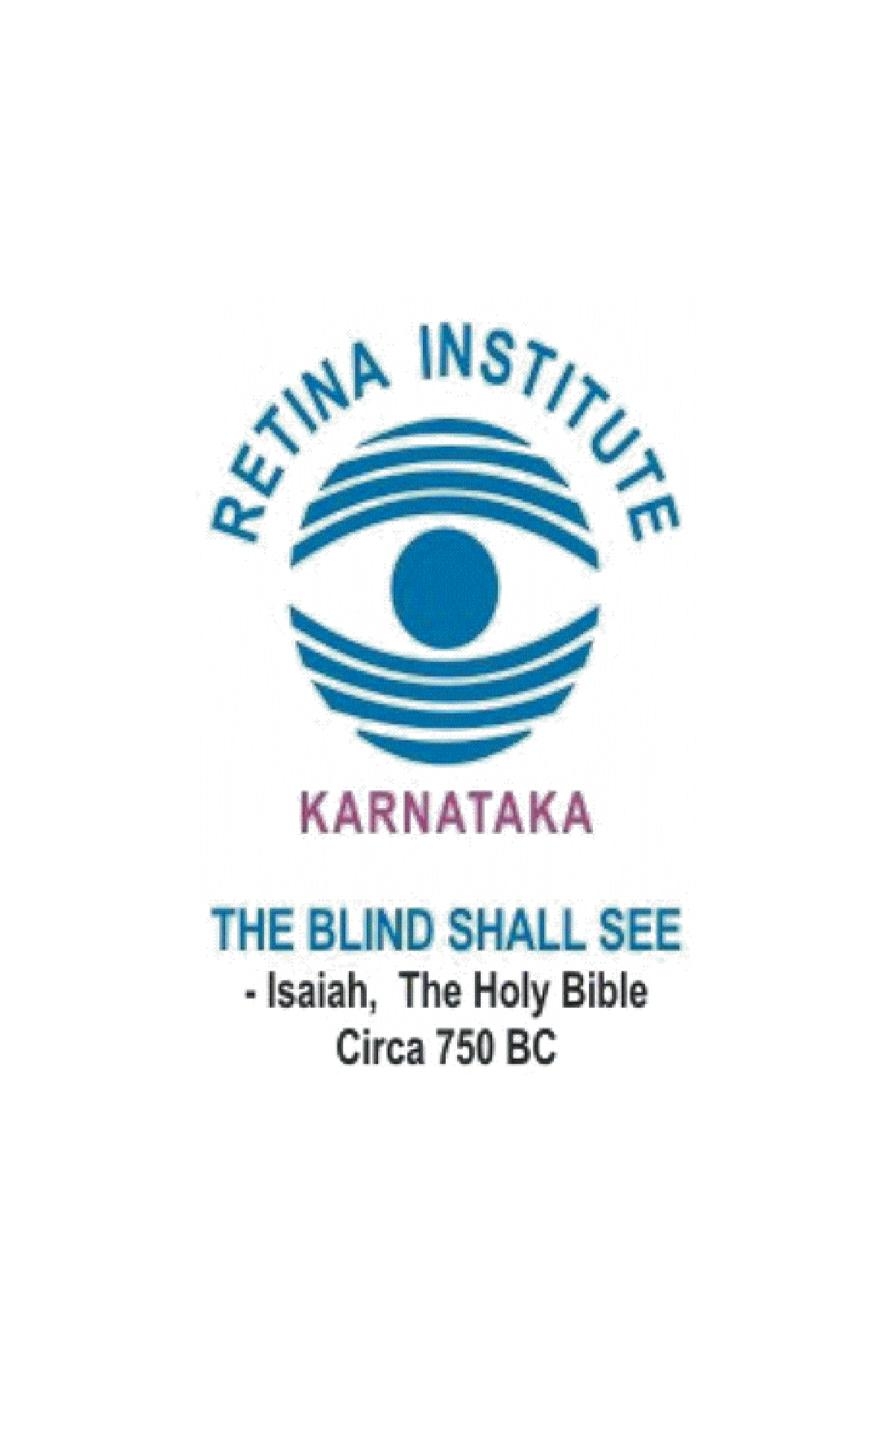 Retina Institute Of Karnataka